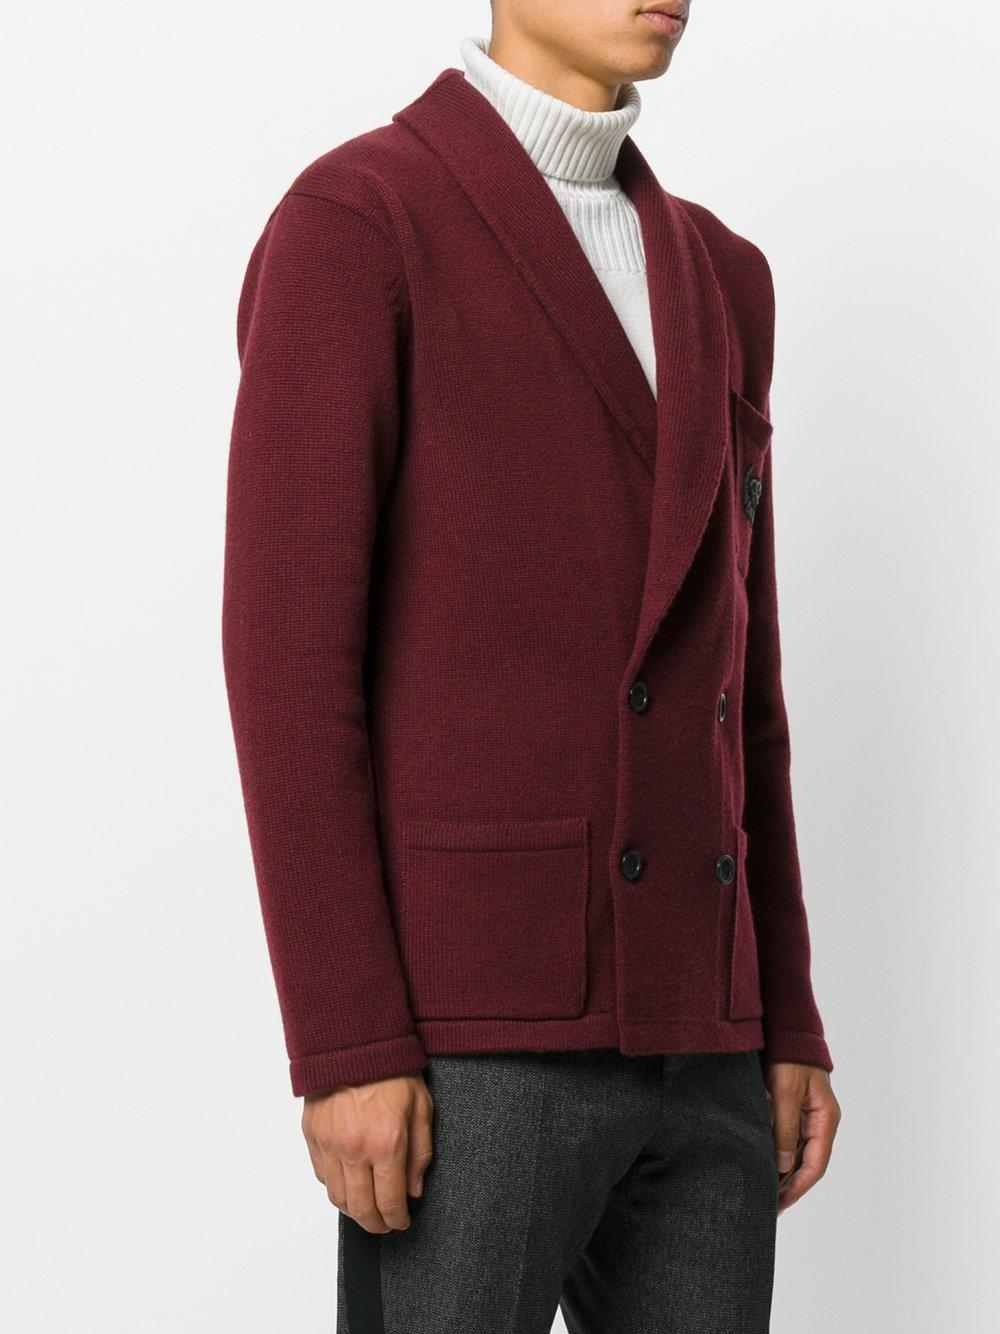 Dolce & Gabbana Cashmere Embroidered Shawl Lapel Jacket for Men